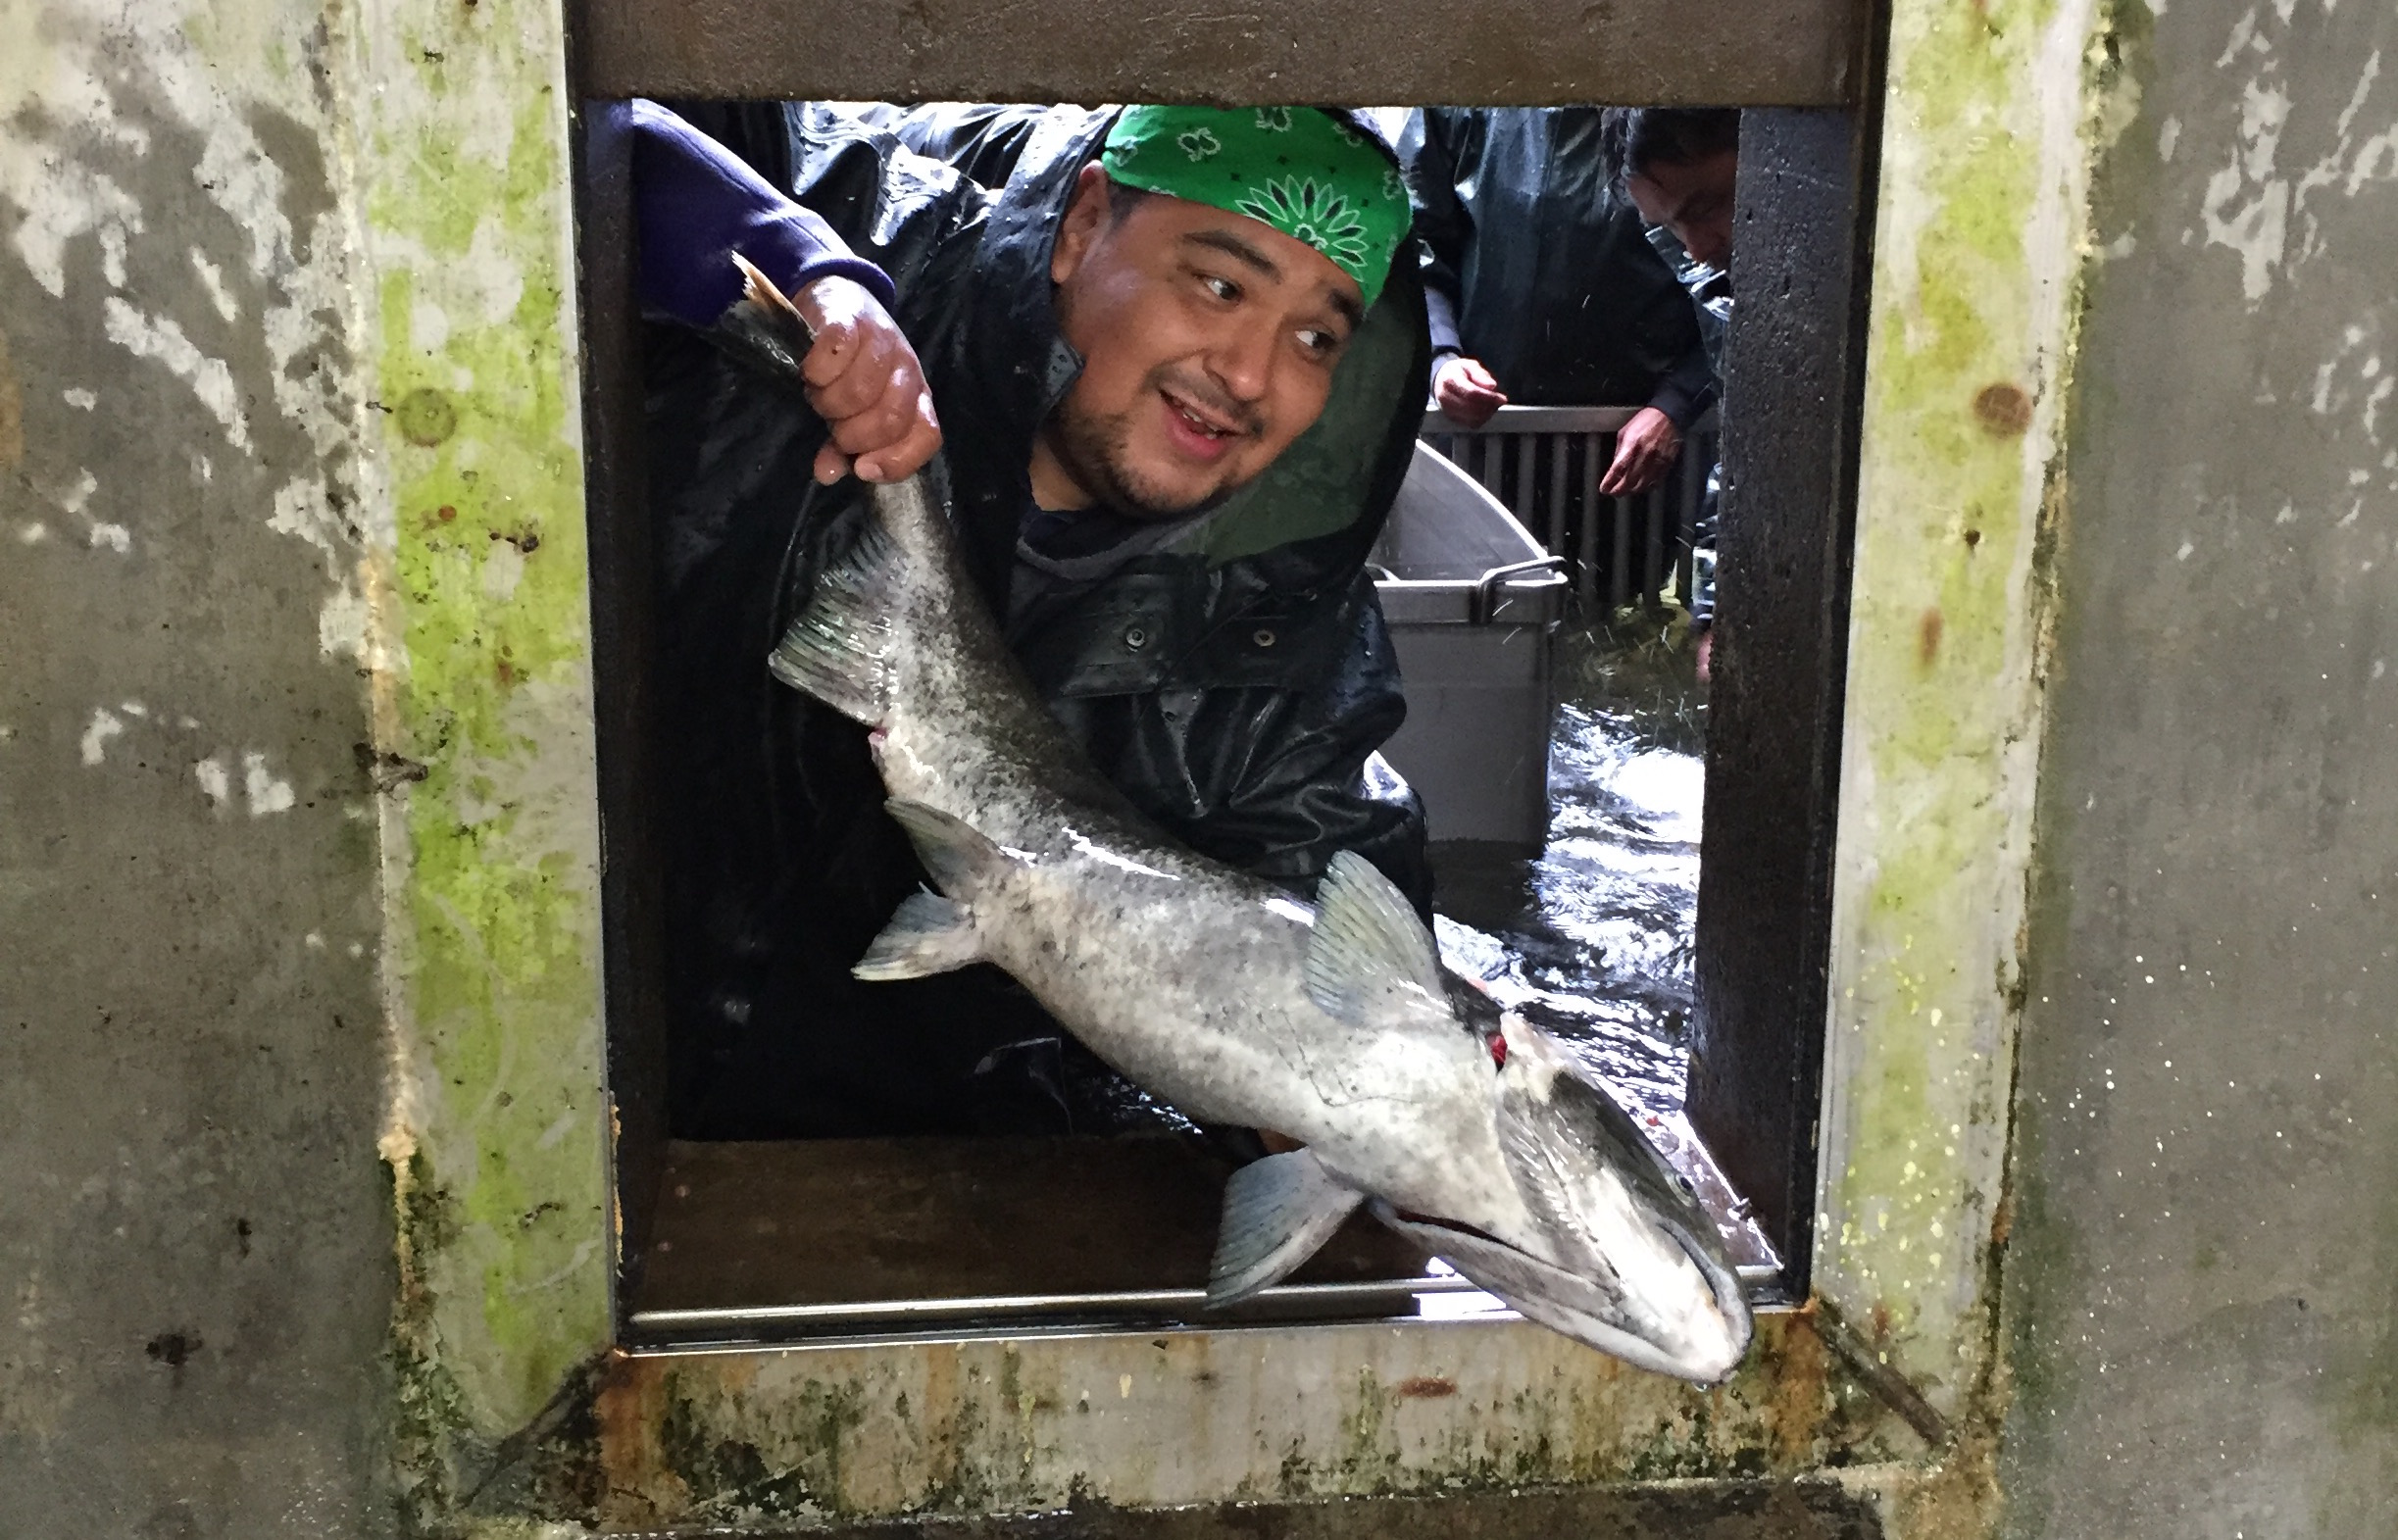 A Nez Perce Fisheries fish technician moves an adult fall chinook in preparation for spawning at the Nez Perce Tribal Hatchery.